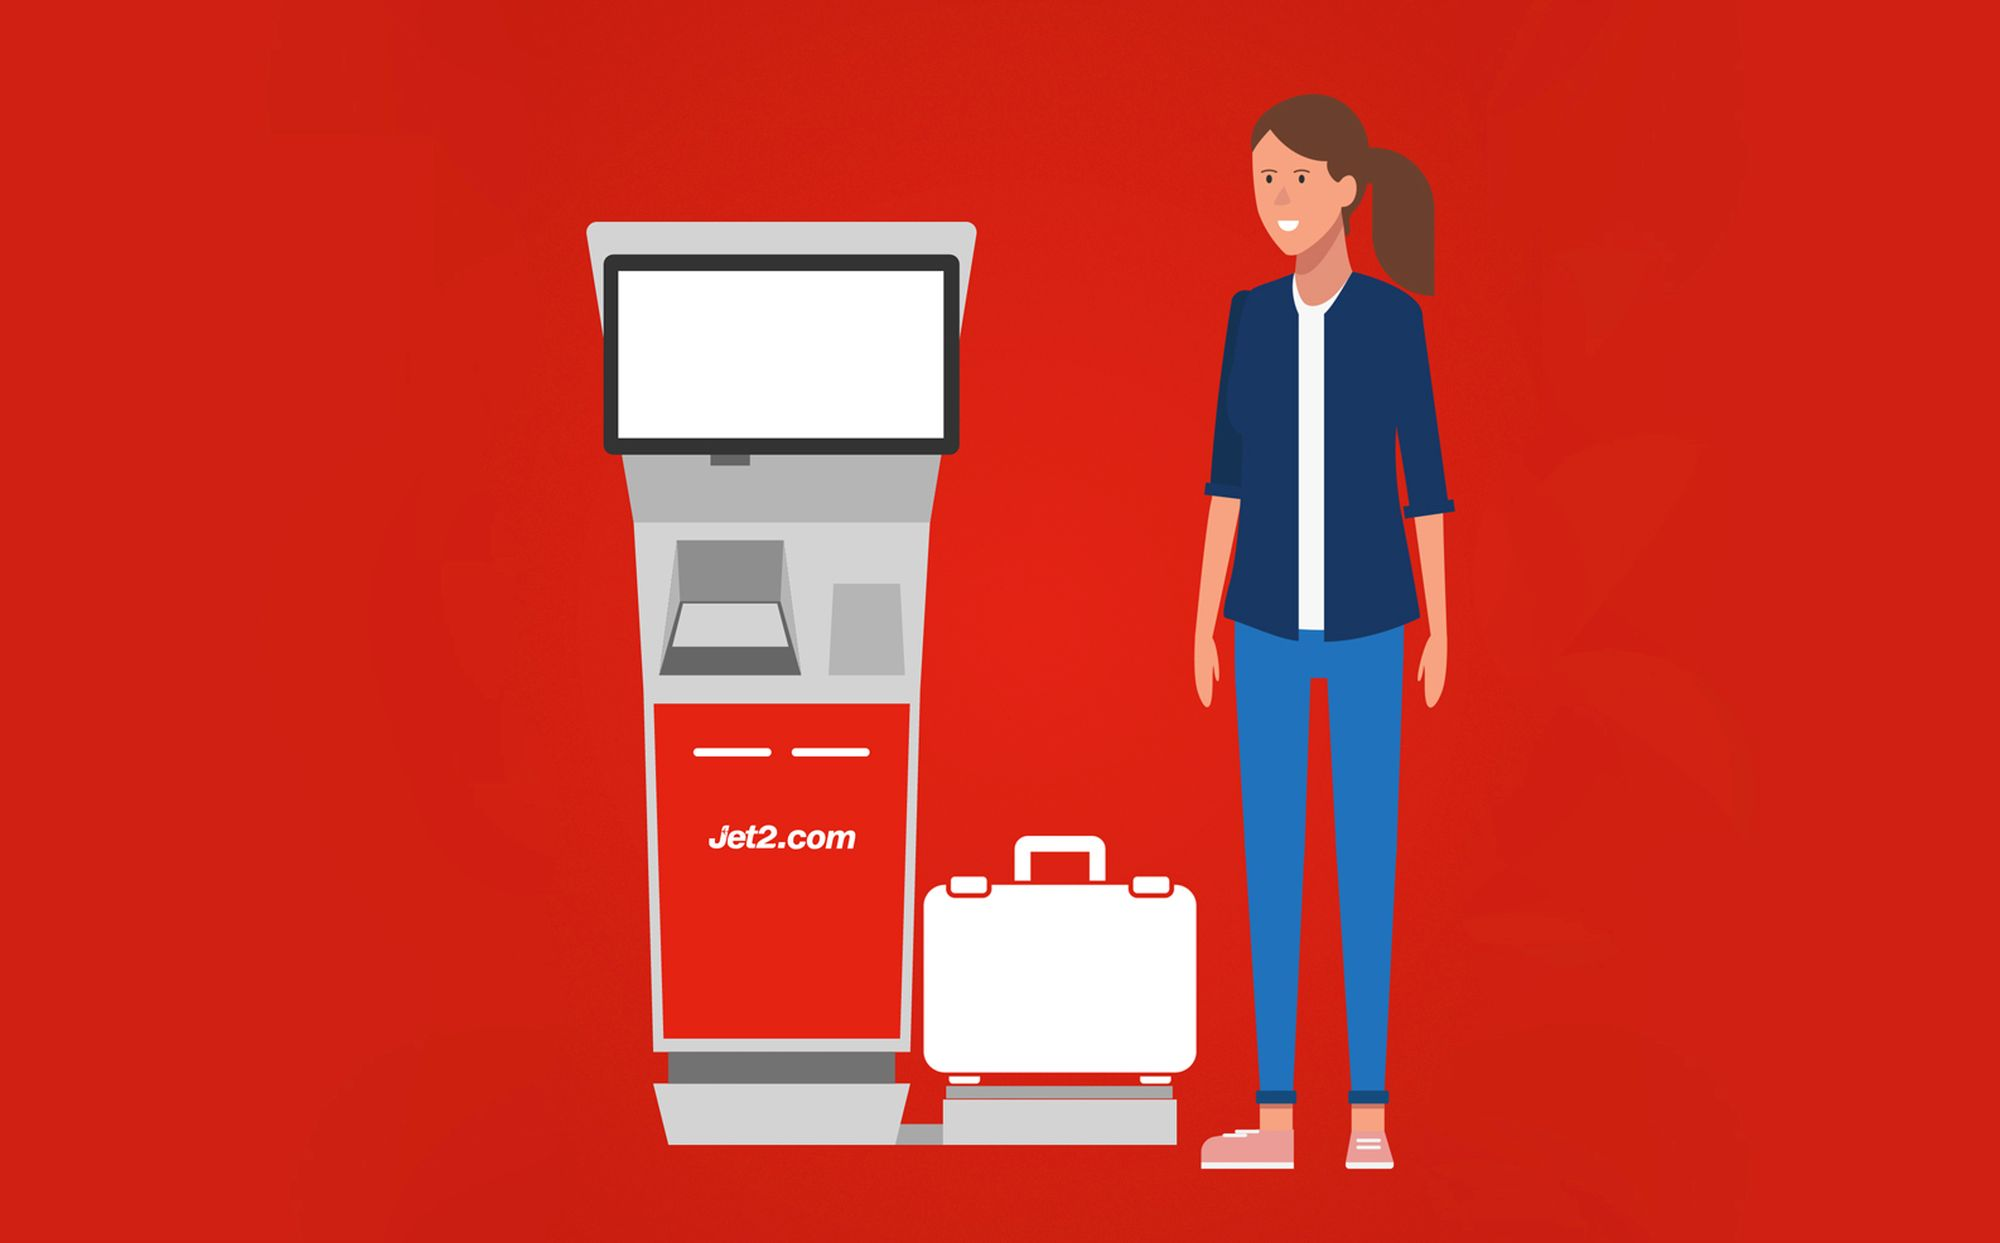 Jet2.com Self Check-In animations